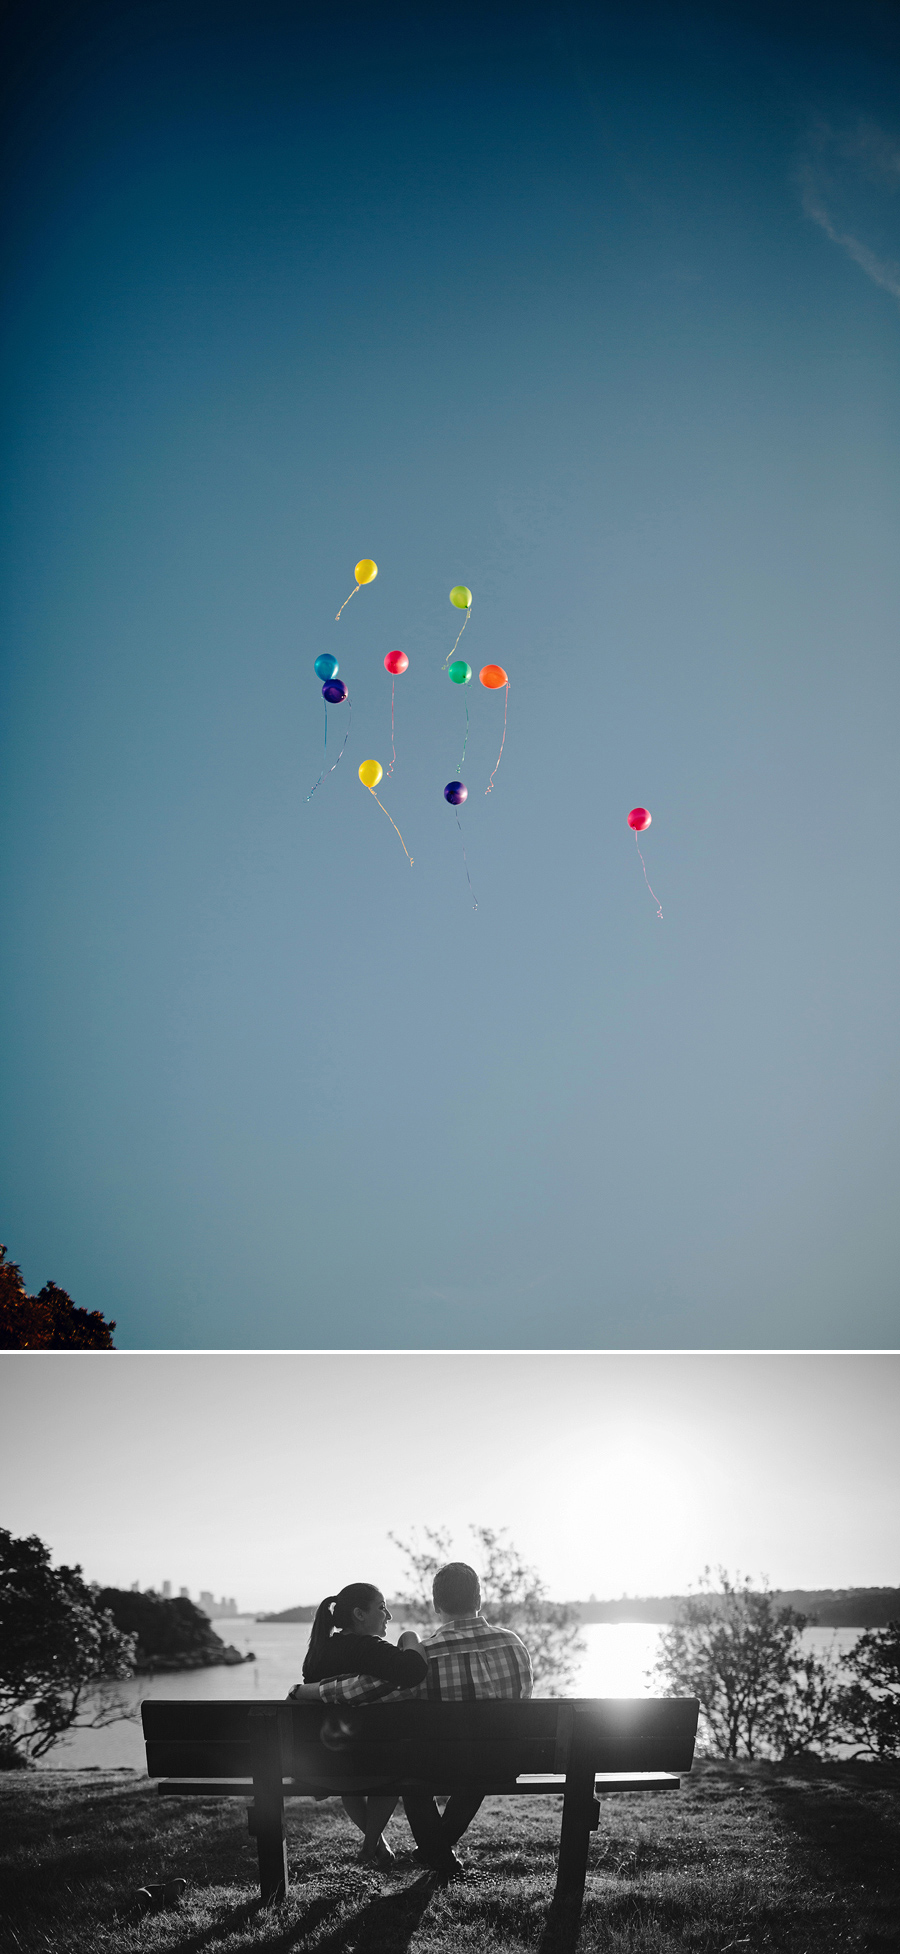 Vaucluse Engagement Photographery: Releasing balloons